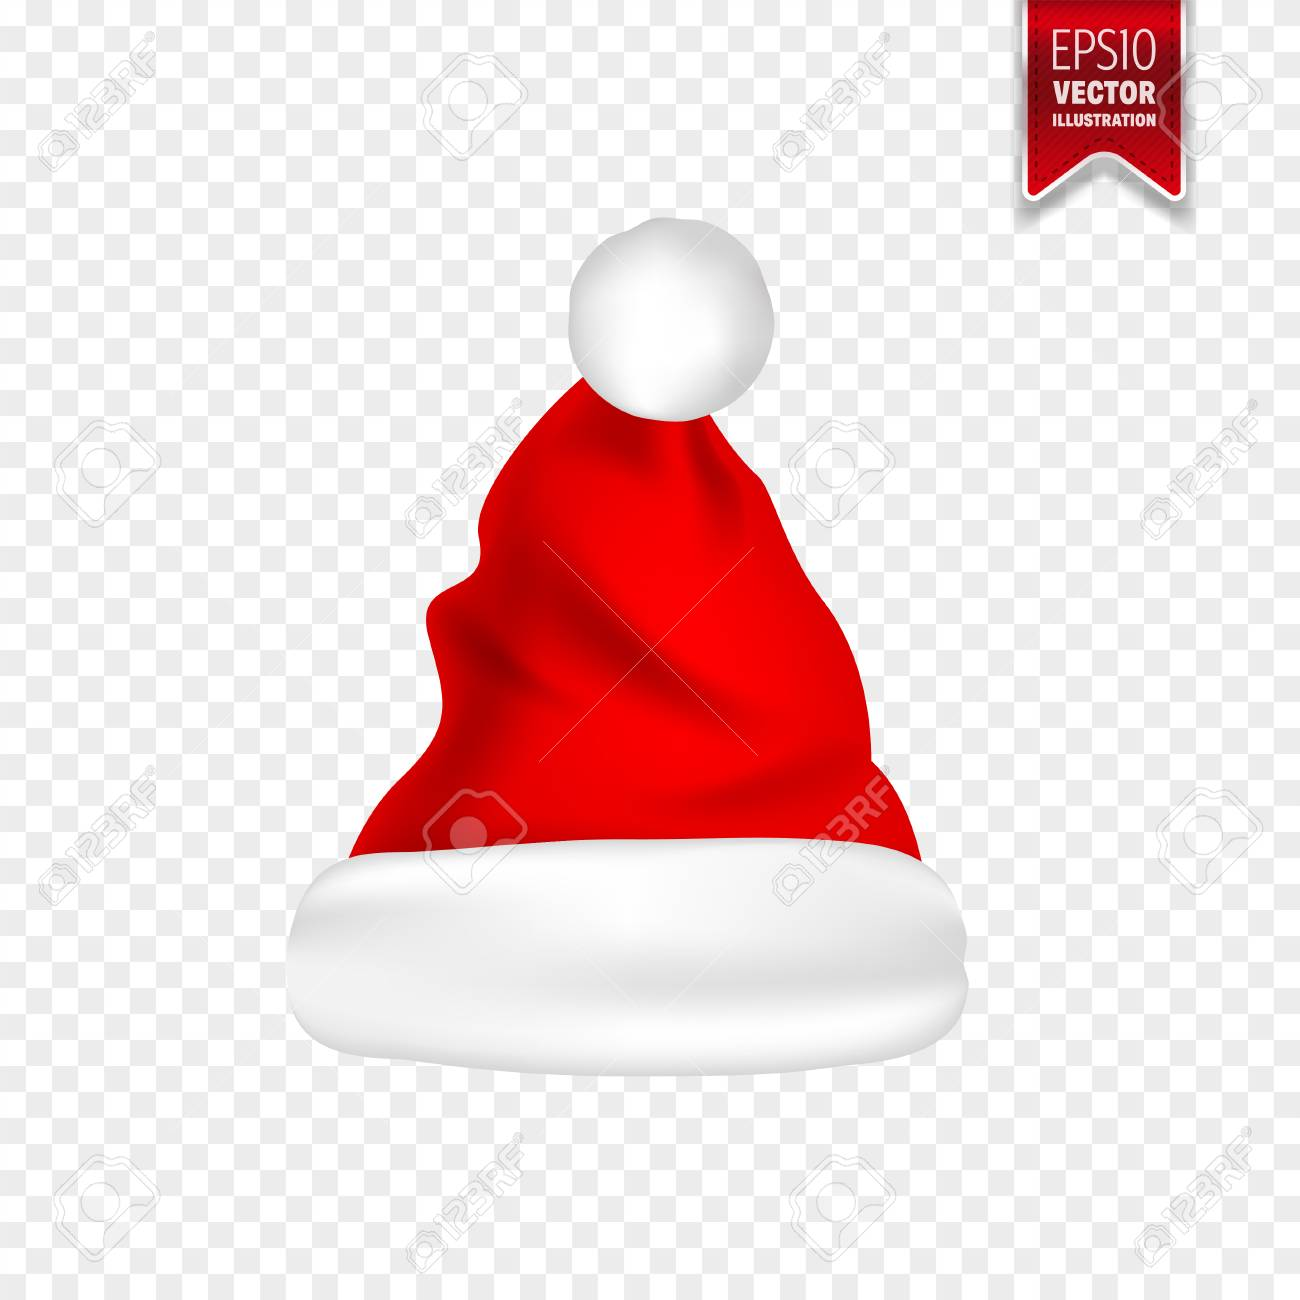 vector illustration christmas santa claus hats with shadow set new year red hat isolated on transparent background